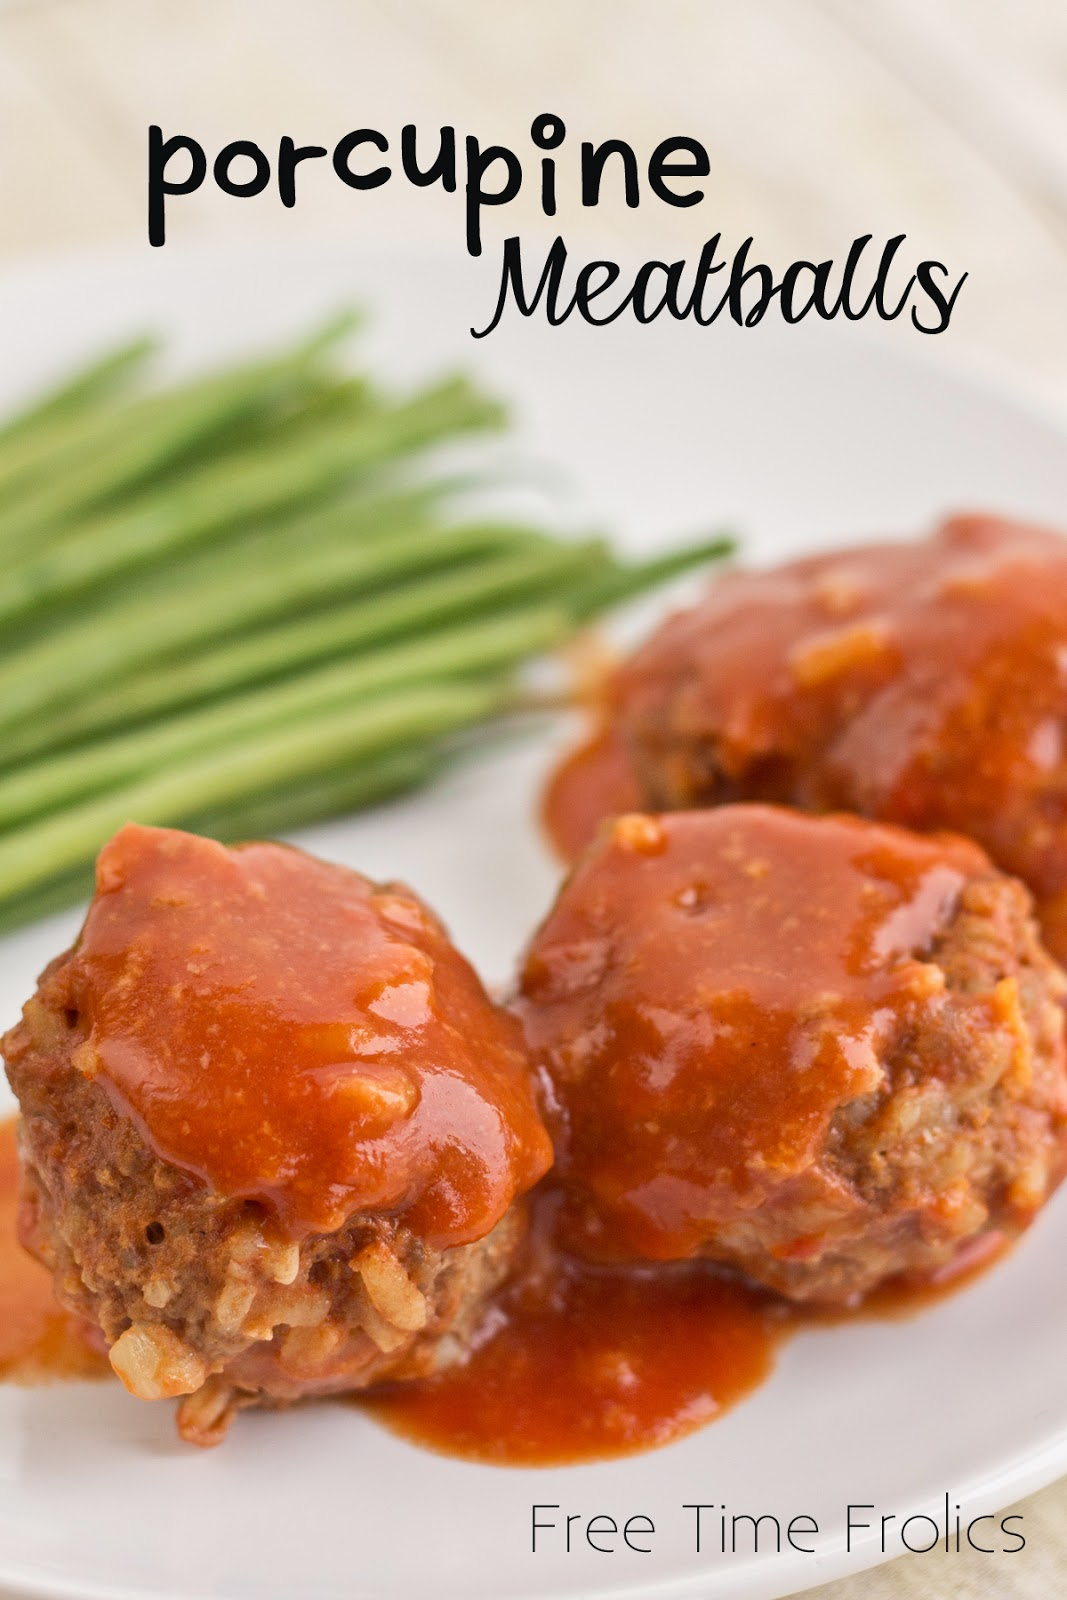 Porcupine Meatballs Freezer Meal via Free Time Frolics #maindish #recipe